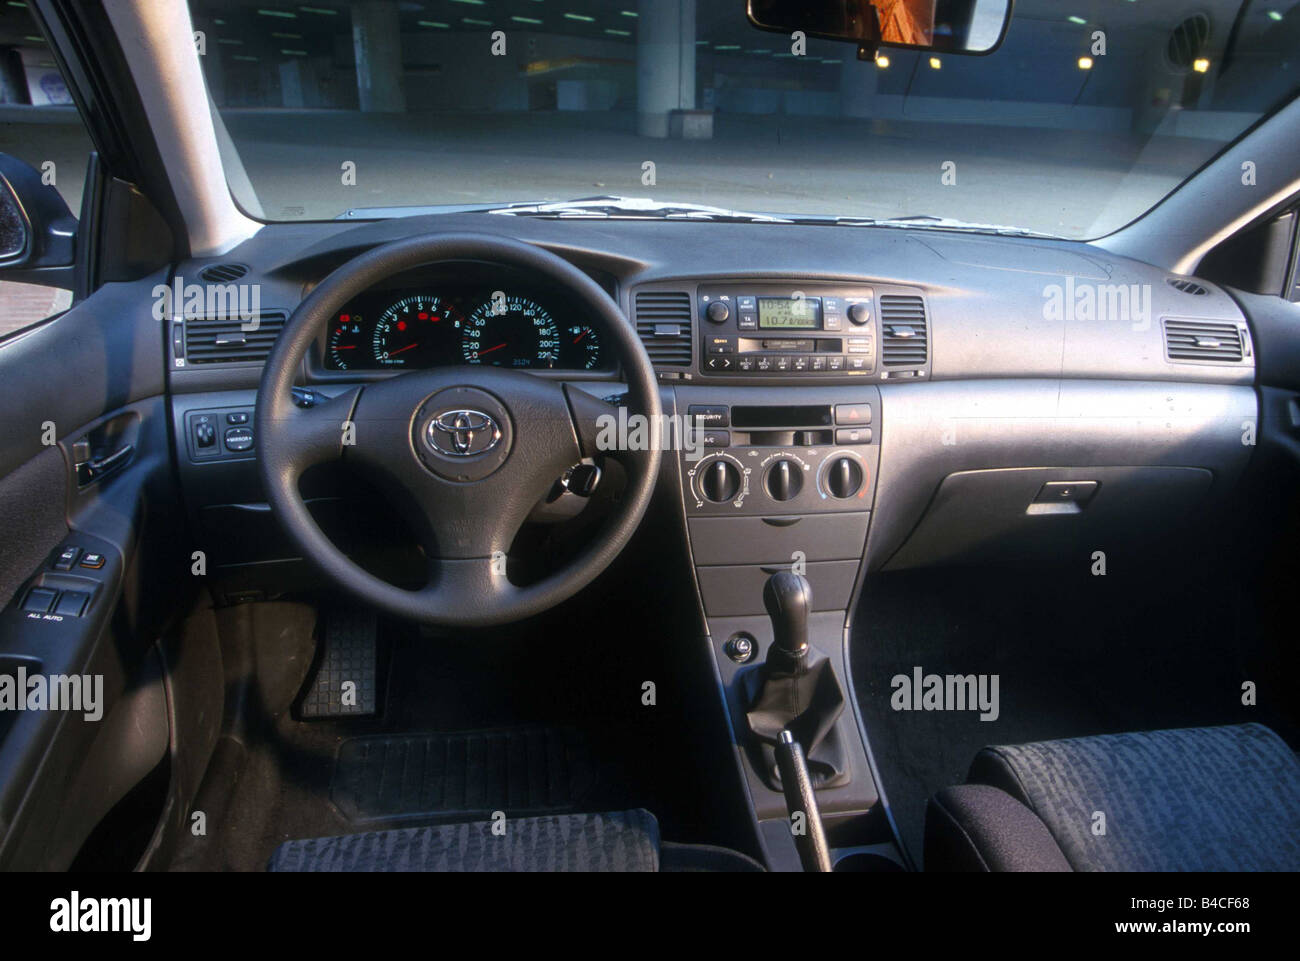 Car Toyota Corolla 1 4 Limousine Lower Middle Sized Class Model Stock Photo Royalty Free